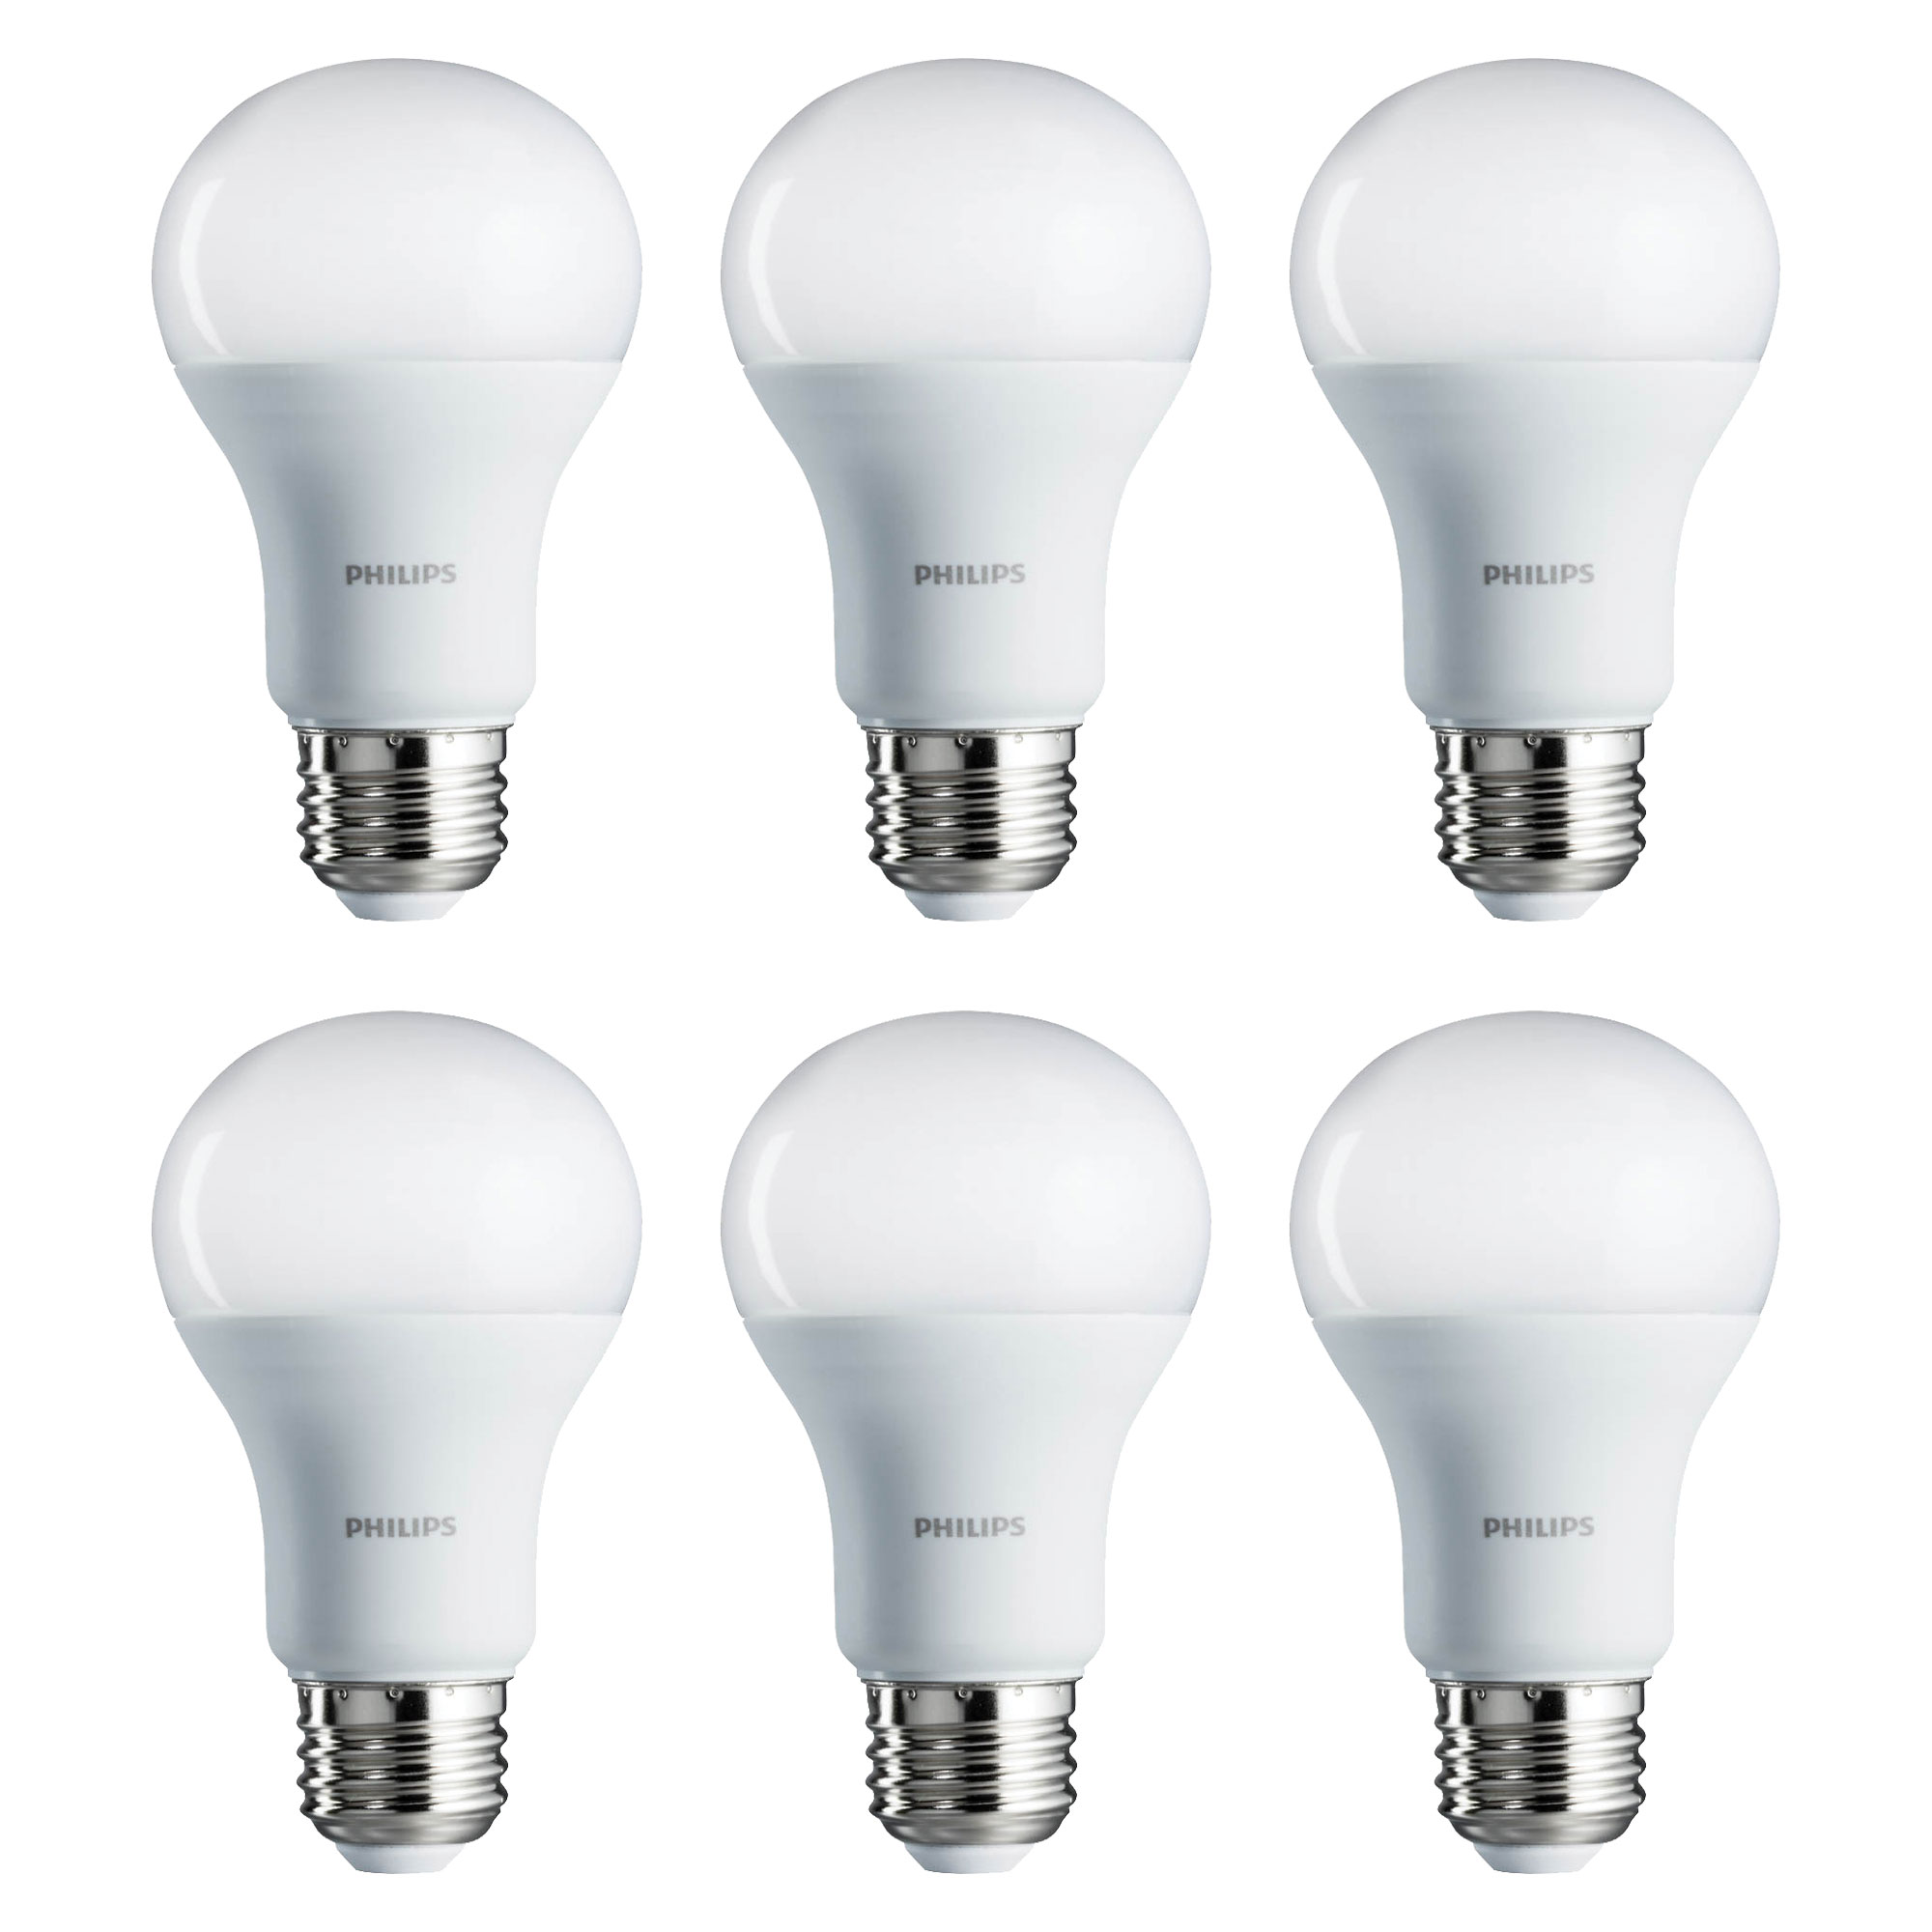 product web new line english distributor enabled com philips hue announces players leading online down lights expansion lighting light bulbs system led products